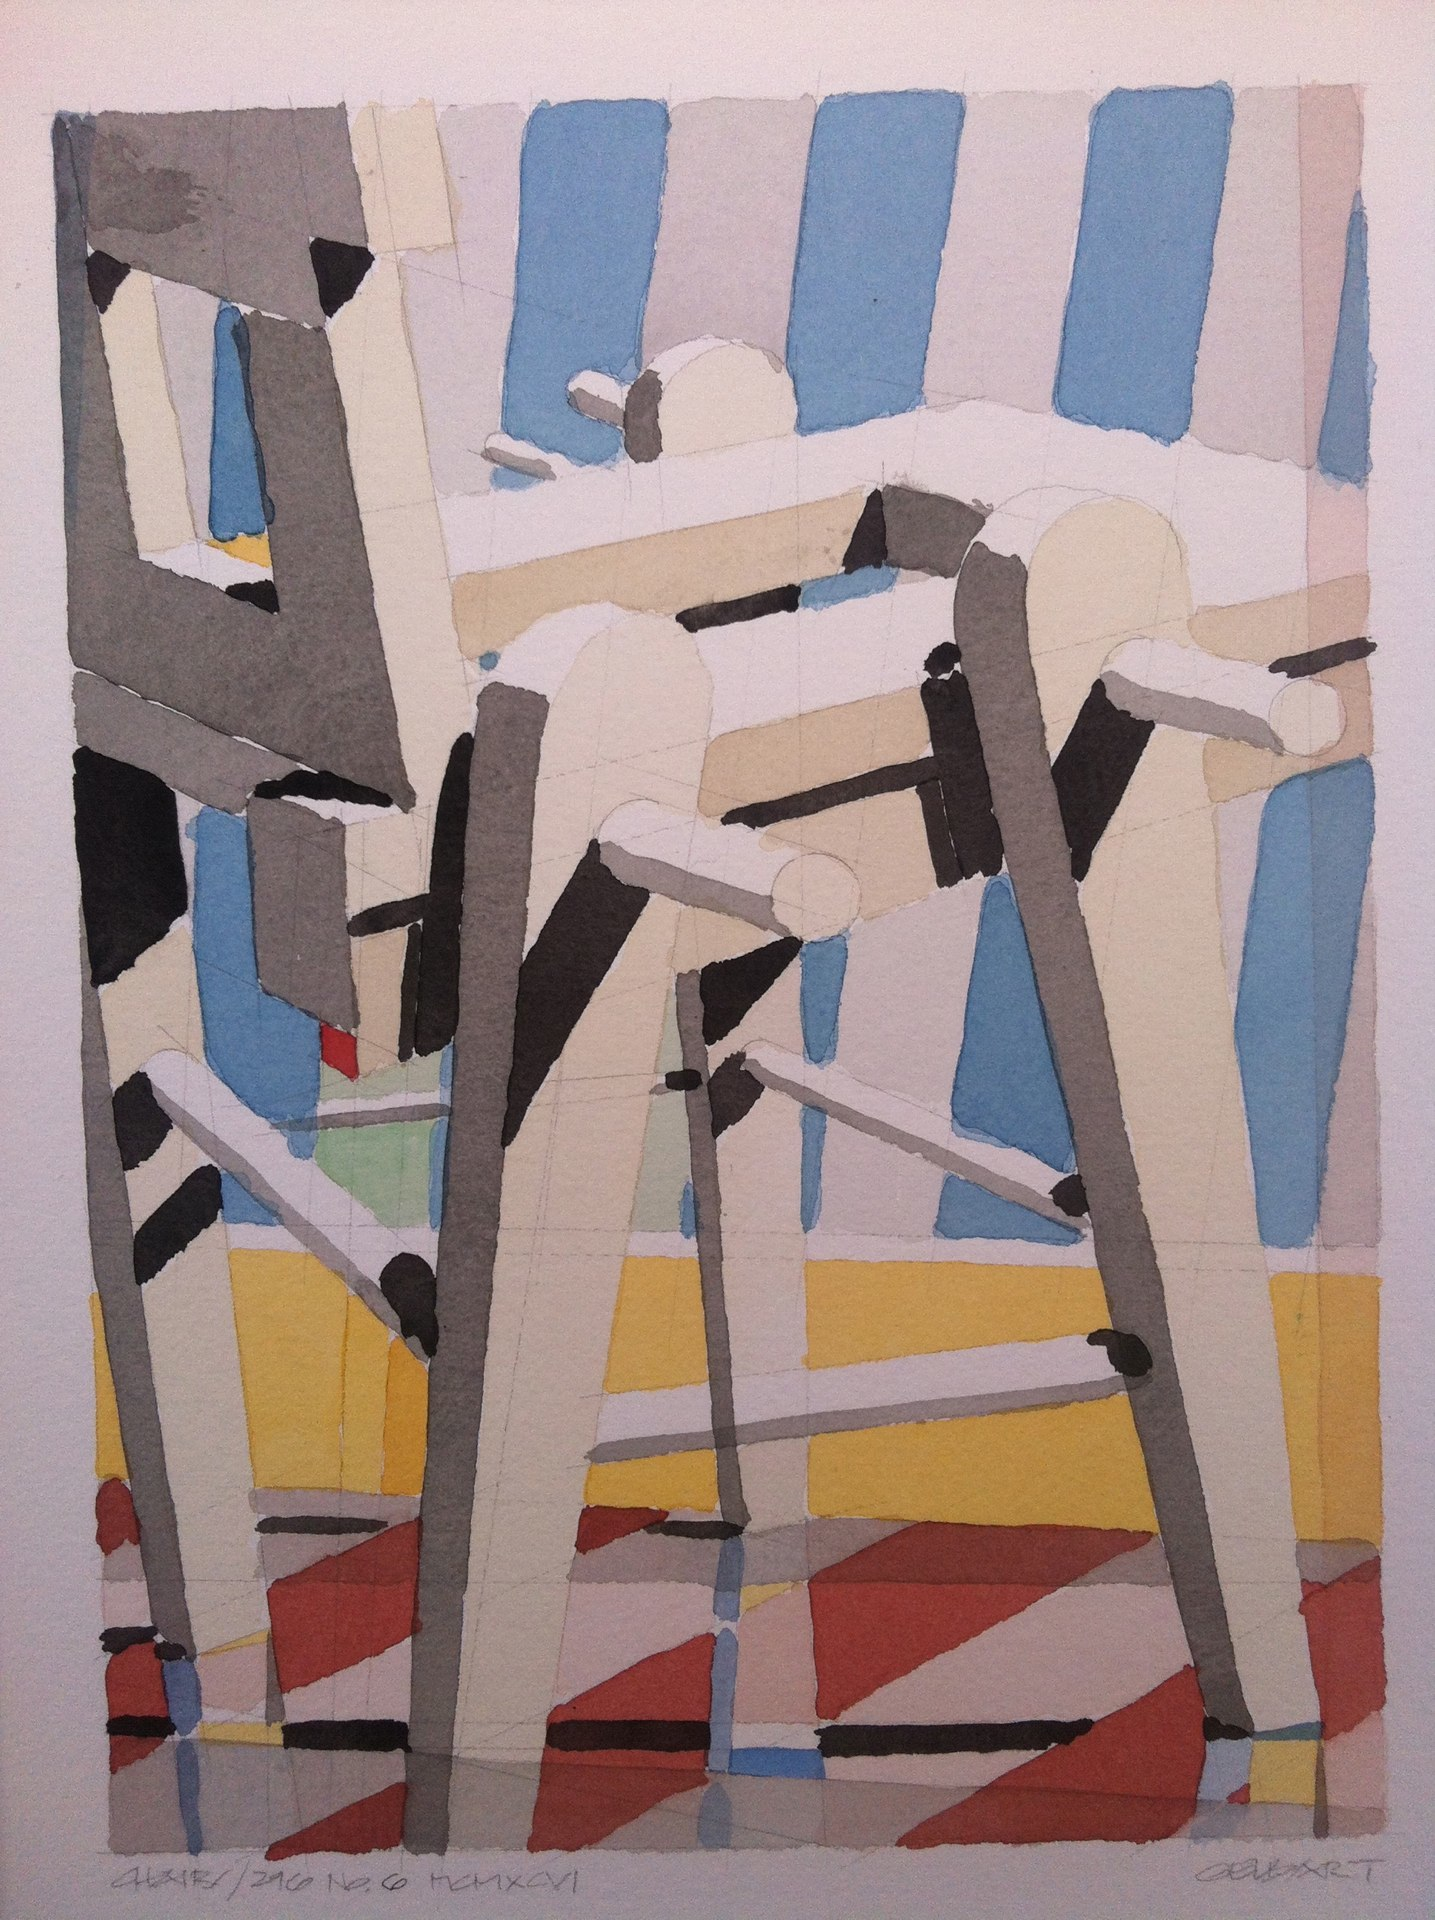 Art of the Chair, Abraham Gelbart